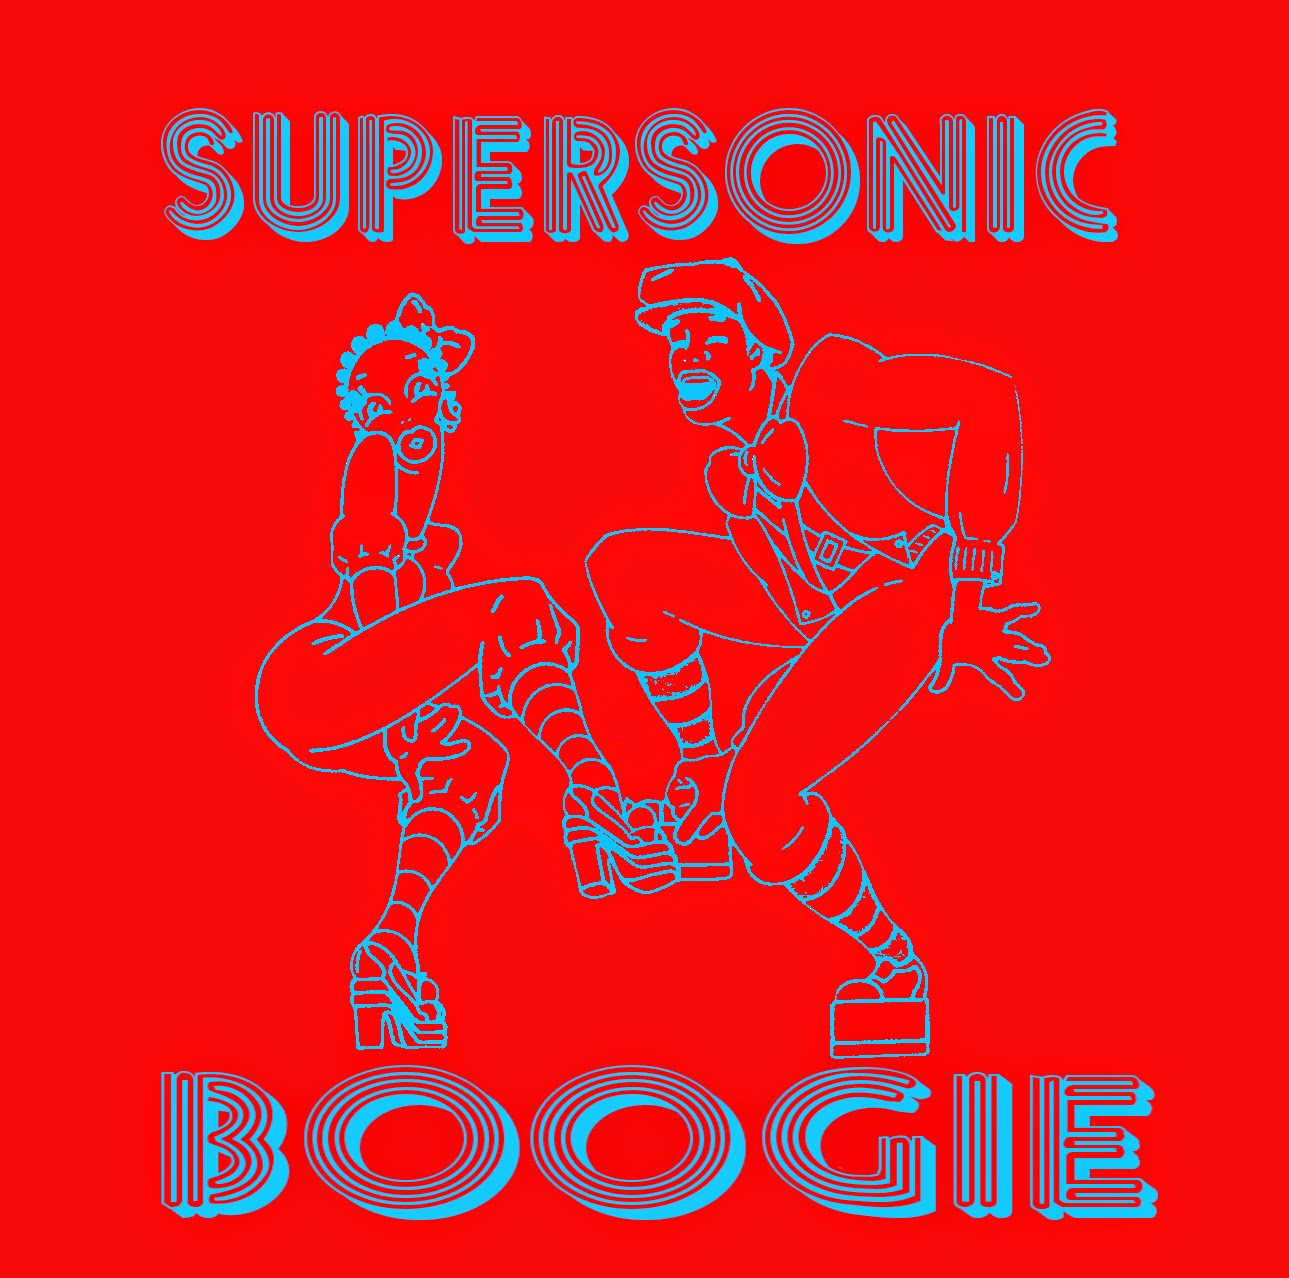 Supersonic Boogie - A Snap, Crackle & Pop Disco Mix